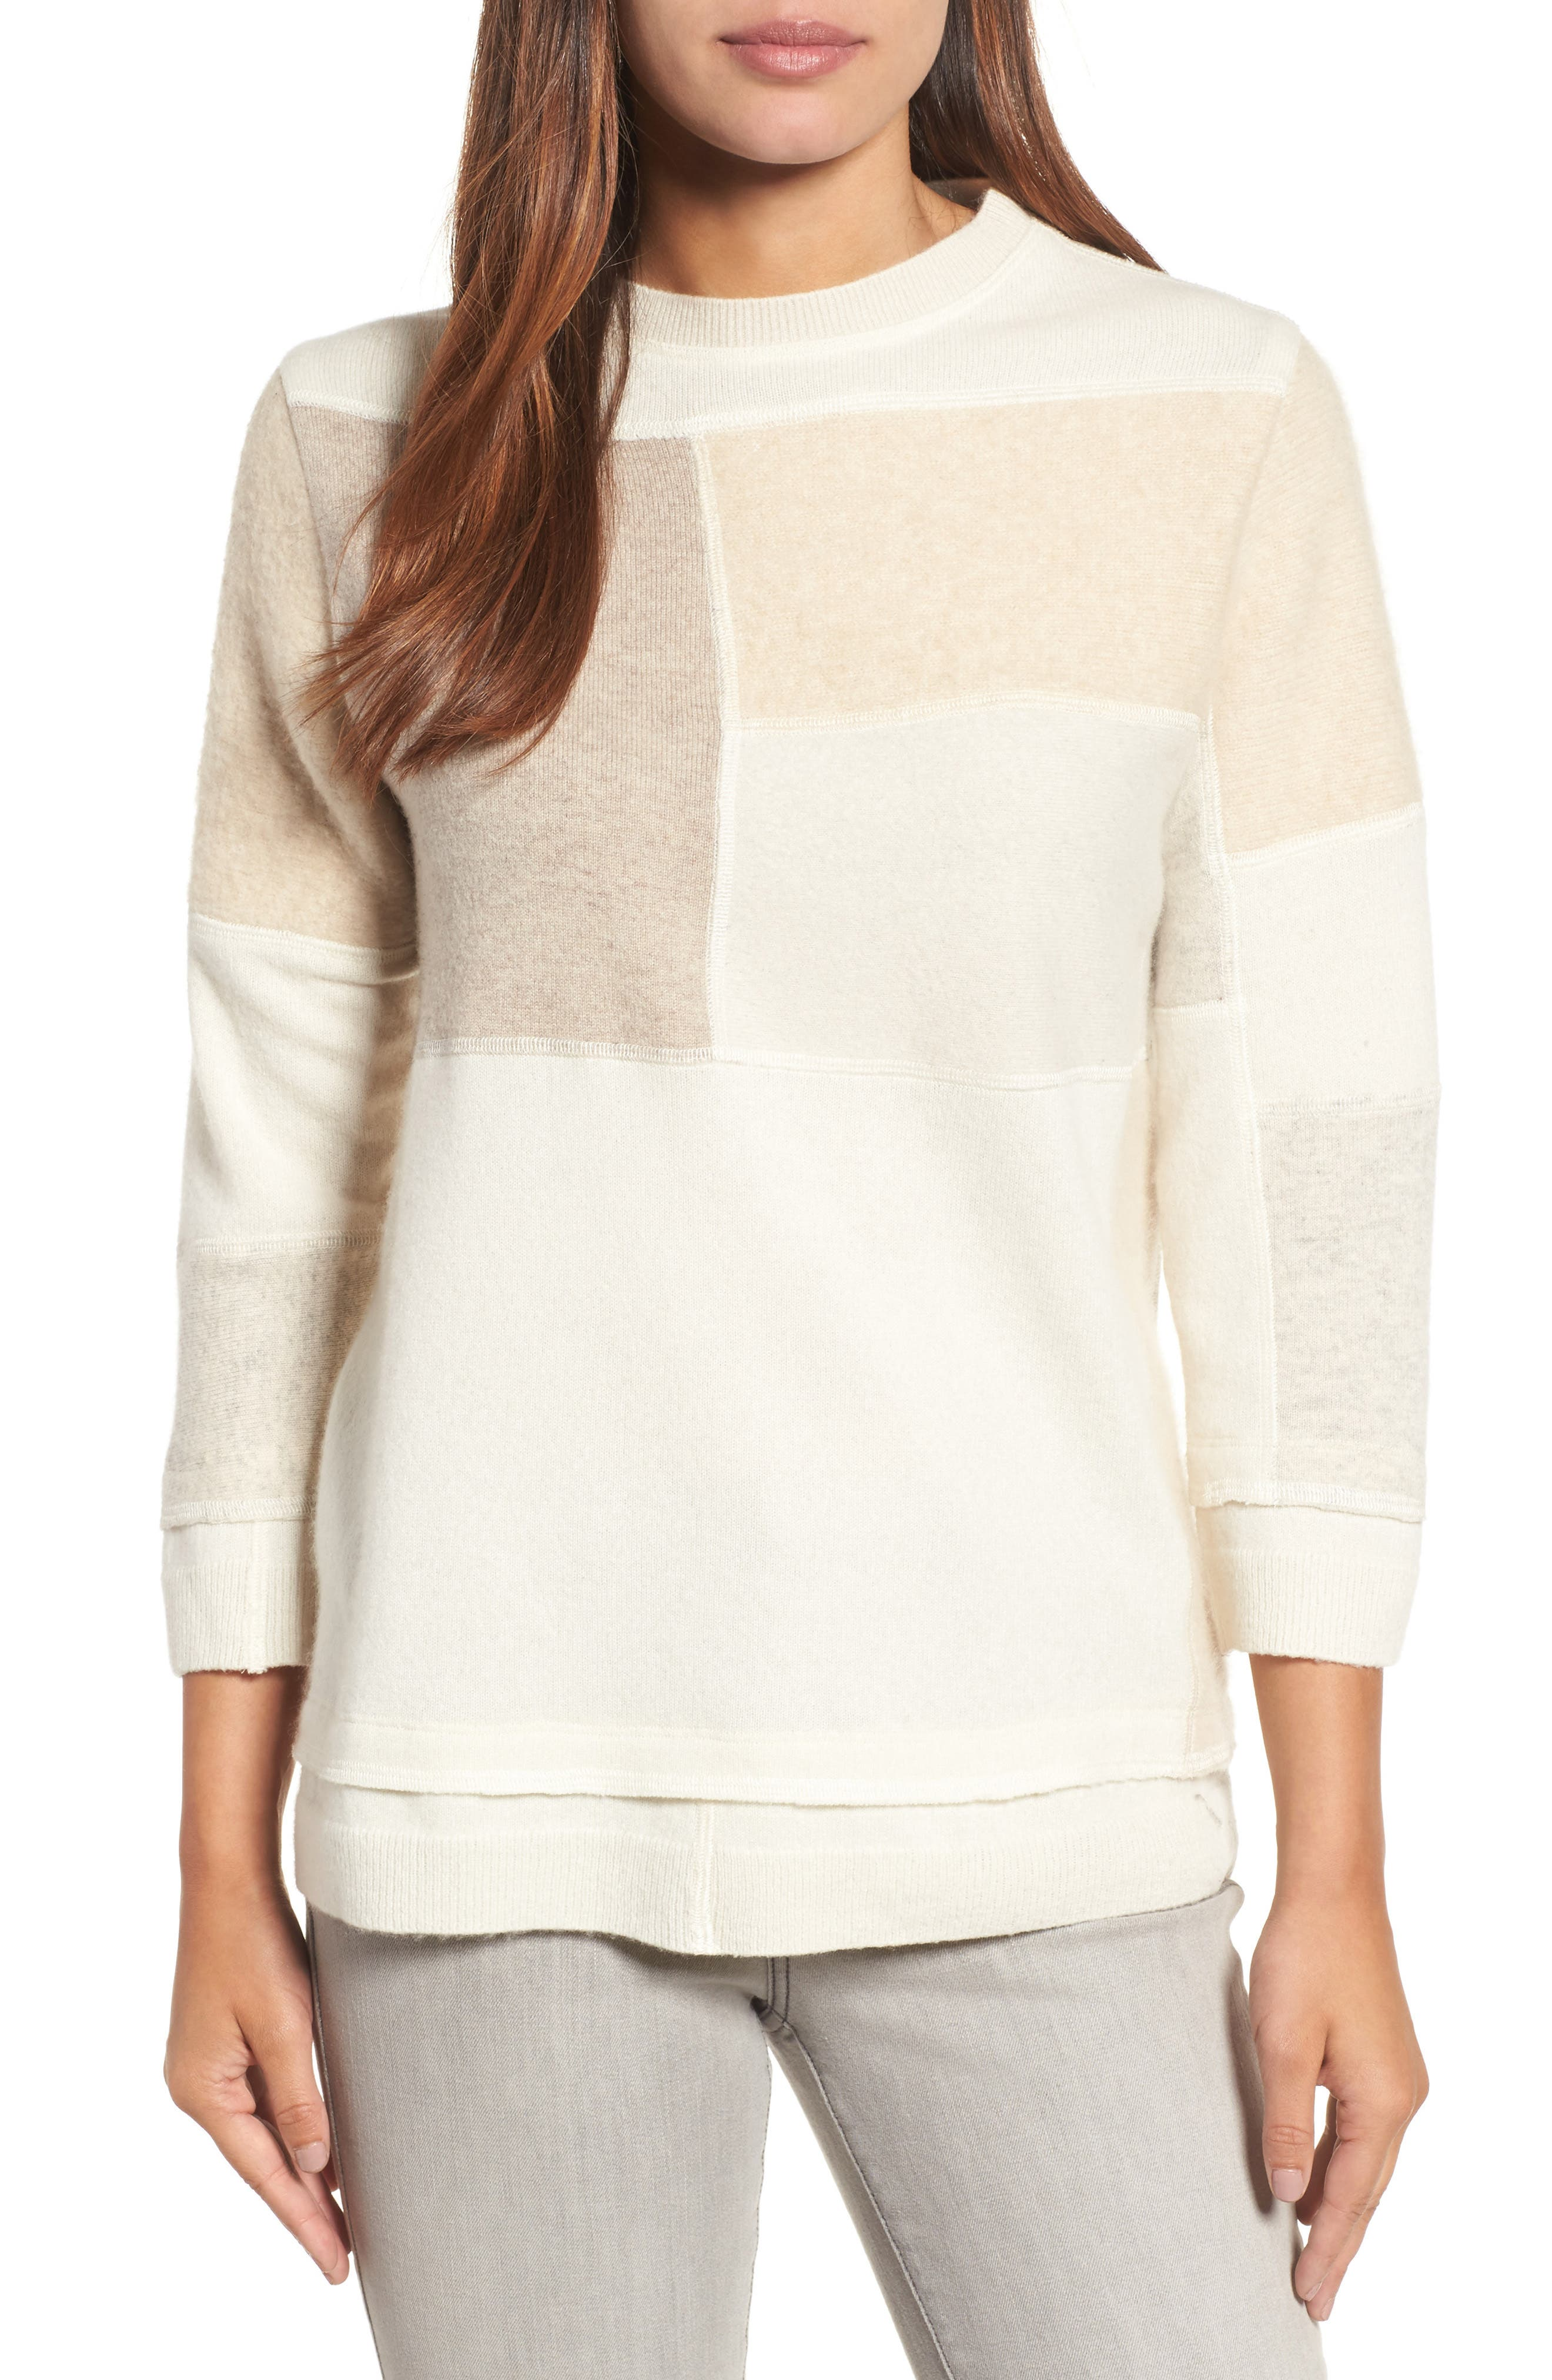 Alternate Image 1 Selected - Eileen Fisher Colorblock Cashmere Sweater (Nordstrom Exclusive)